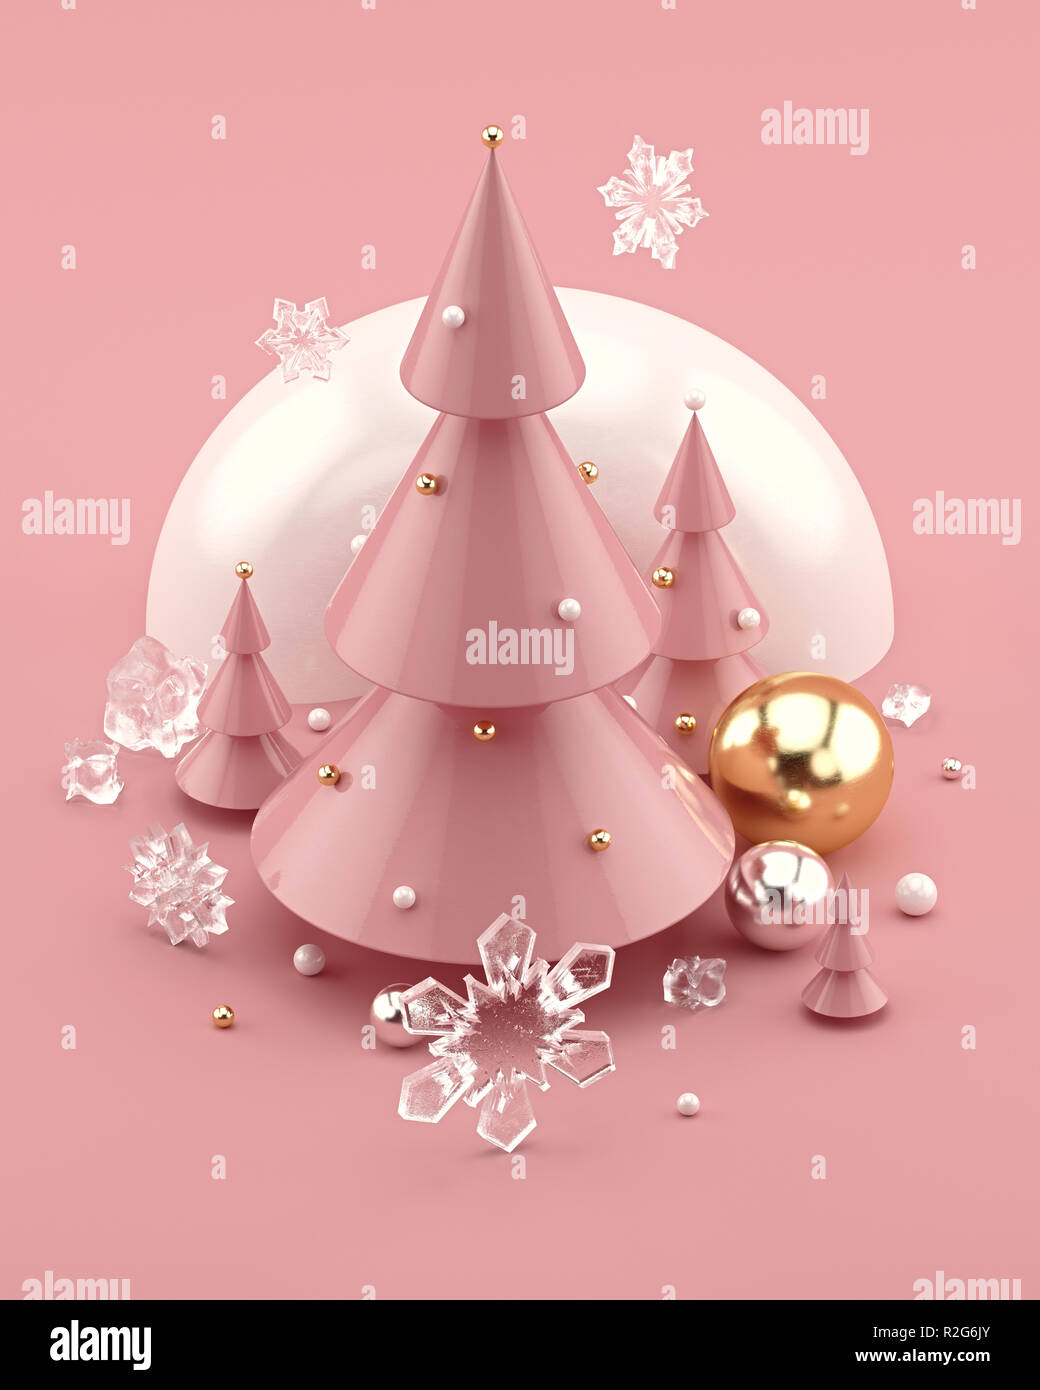 Rose Gold 3D illustration with decorated Christmas trees and snowflakes. - Stock Image